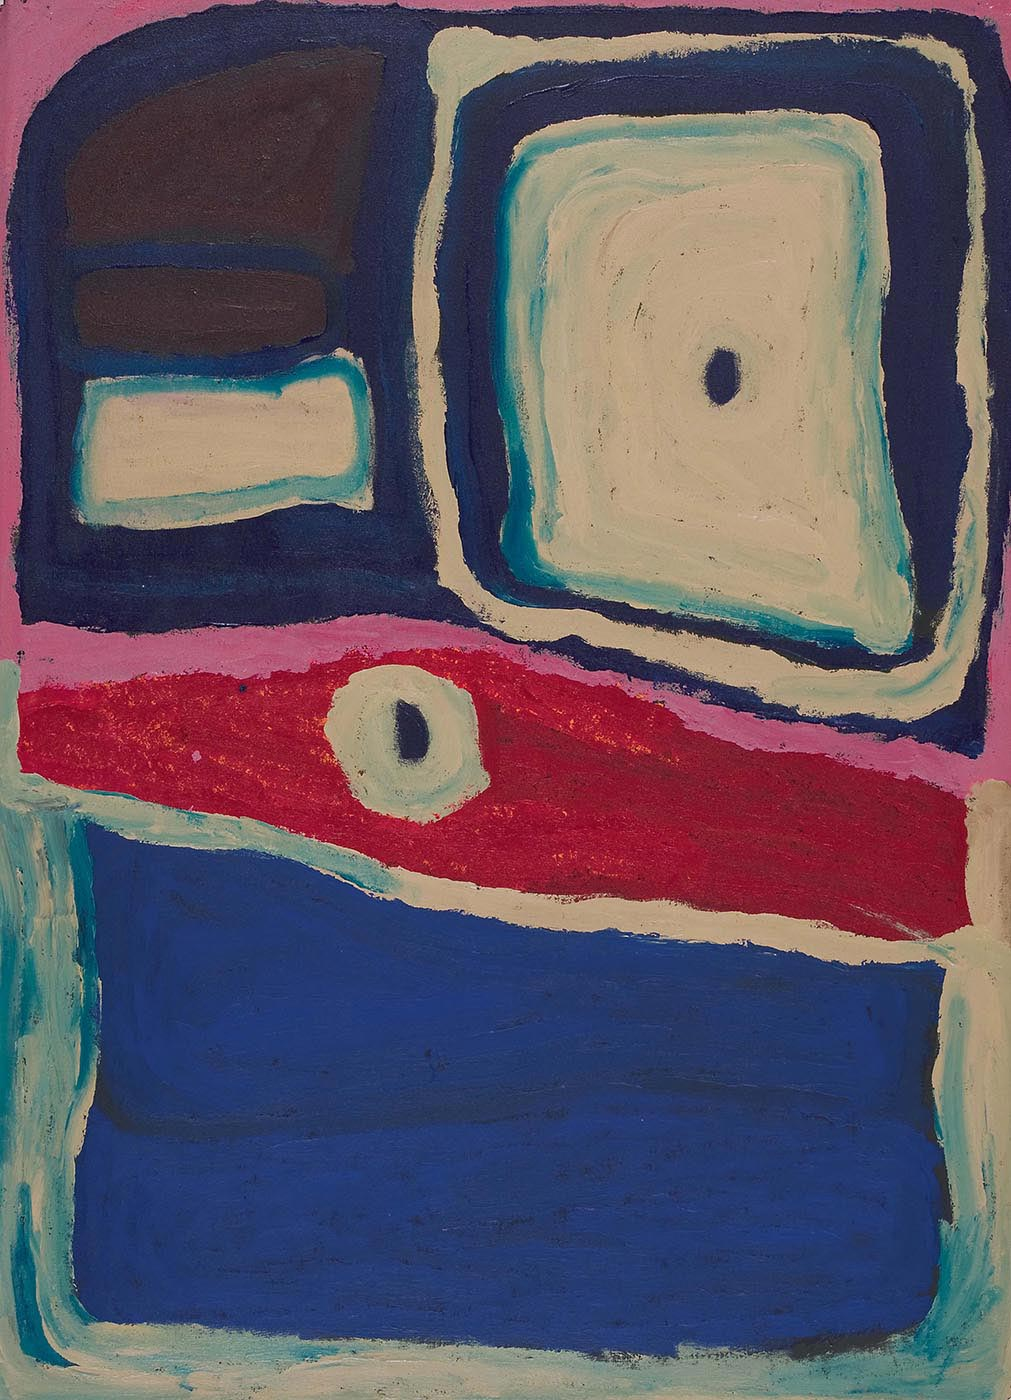 A multi-coloured acrylic painting on canvas with a beige and blue concentric rectangular shape in the top right corner with a small blue disc in the centre. At the top left are two dark blue and off white shapes in a vertical row. All of these are bordered with pink. Beneath that is a horizontal section in red with a disc of beige and black. The lower section of the canvas is filled with dark blue and bordered with a beige-blue colour - click to view larger image